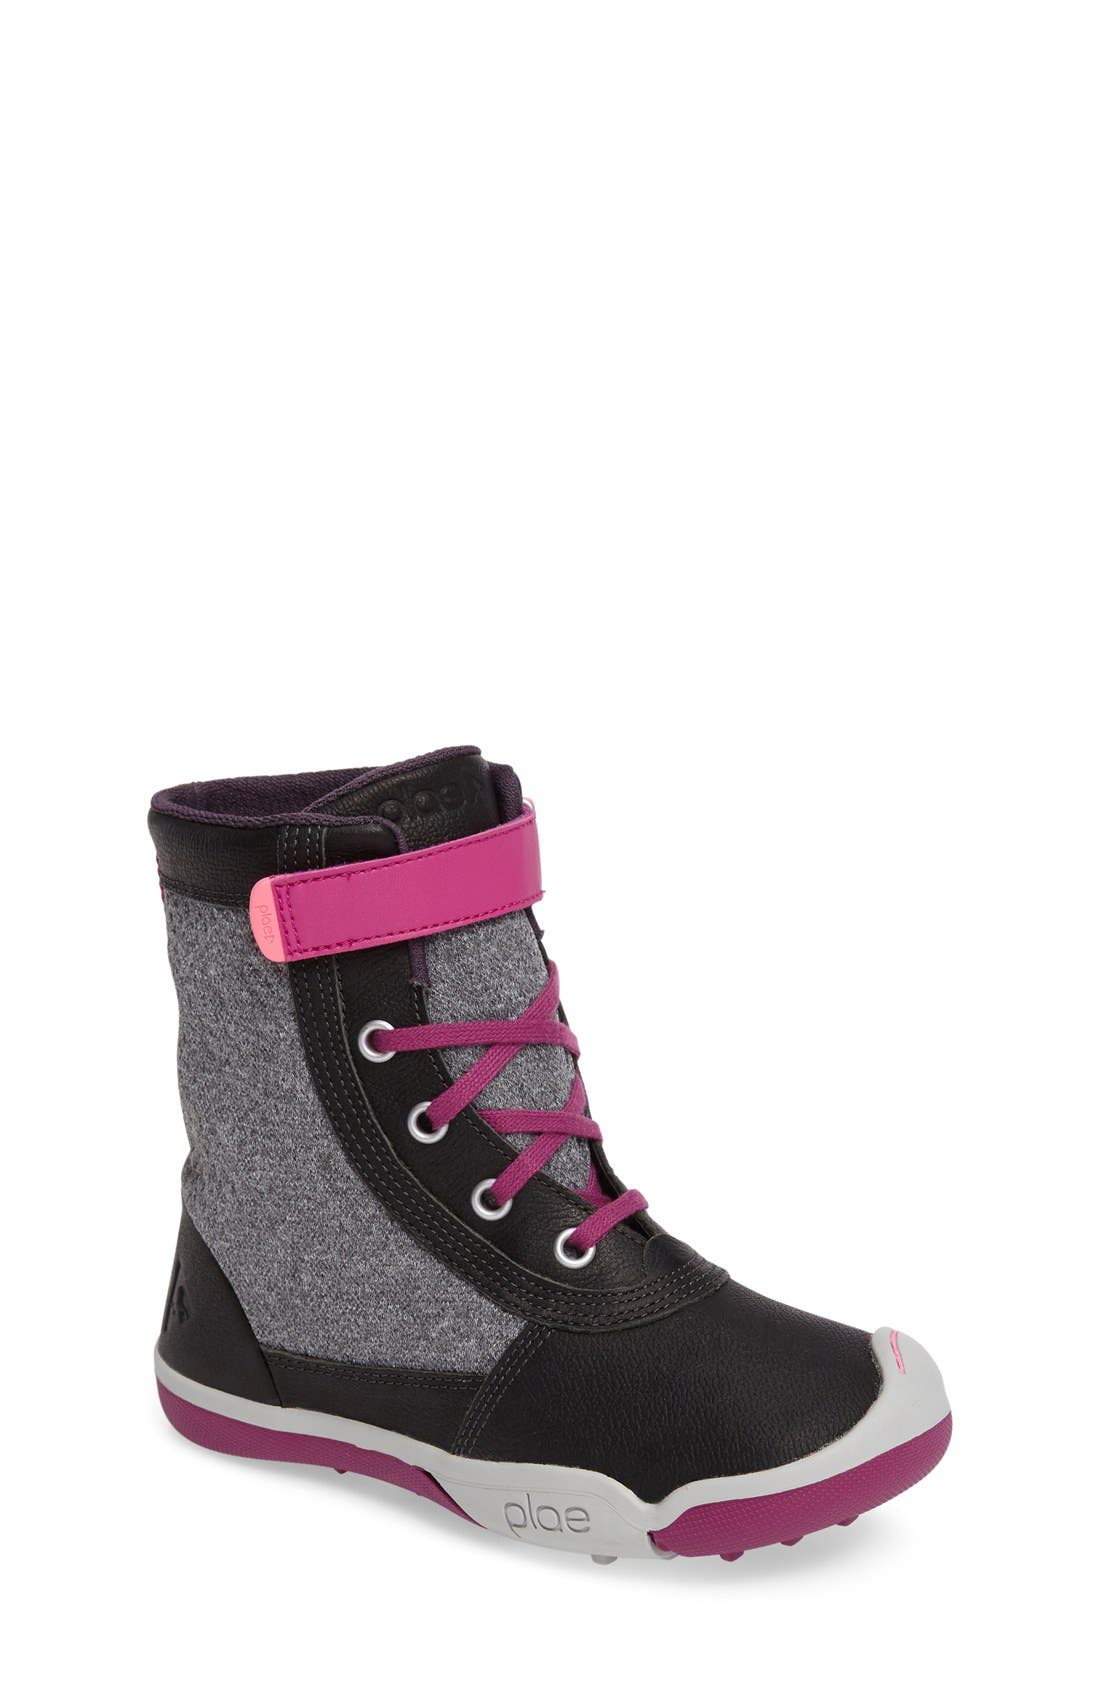 PLAE Noel Customiz Boot